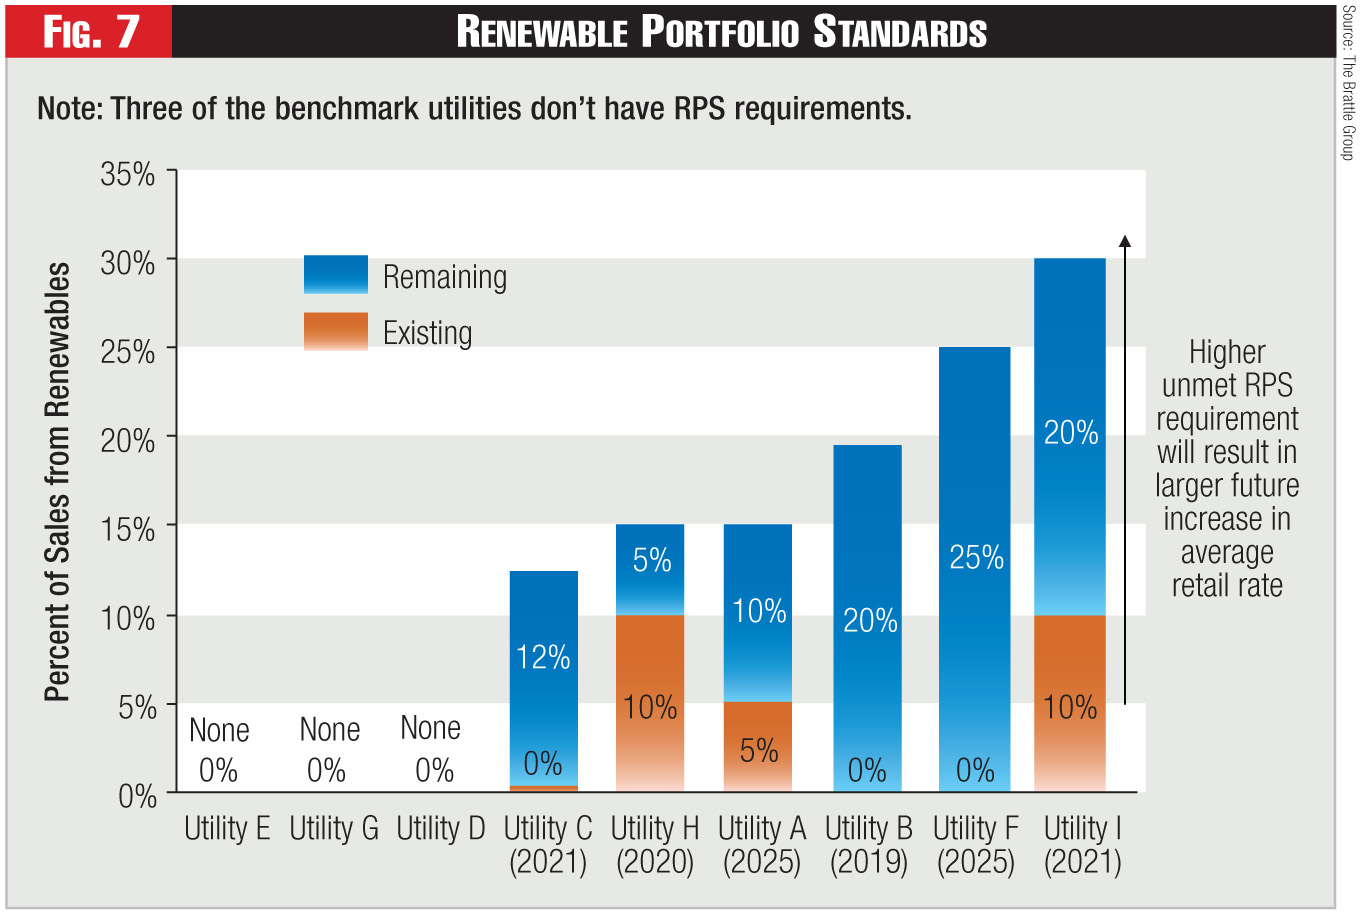 Figure 7 - Renewable Portfolio Standards